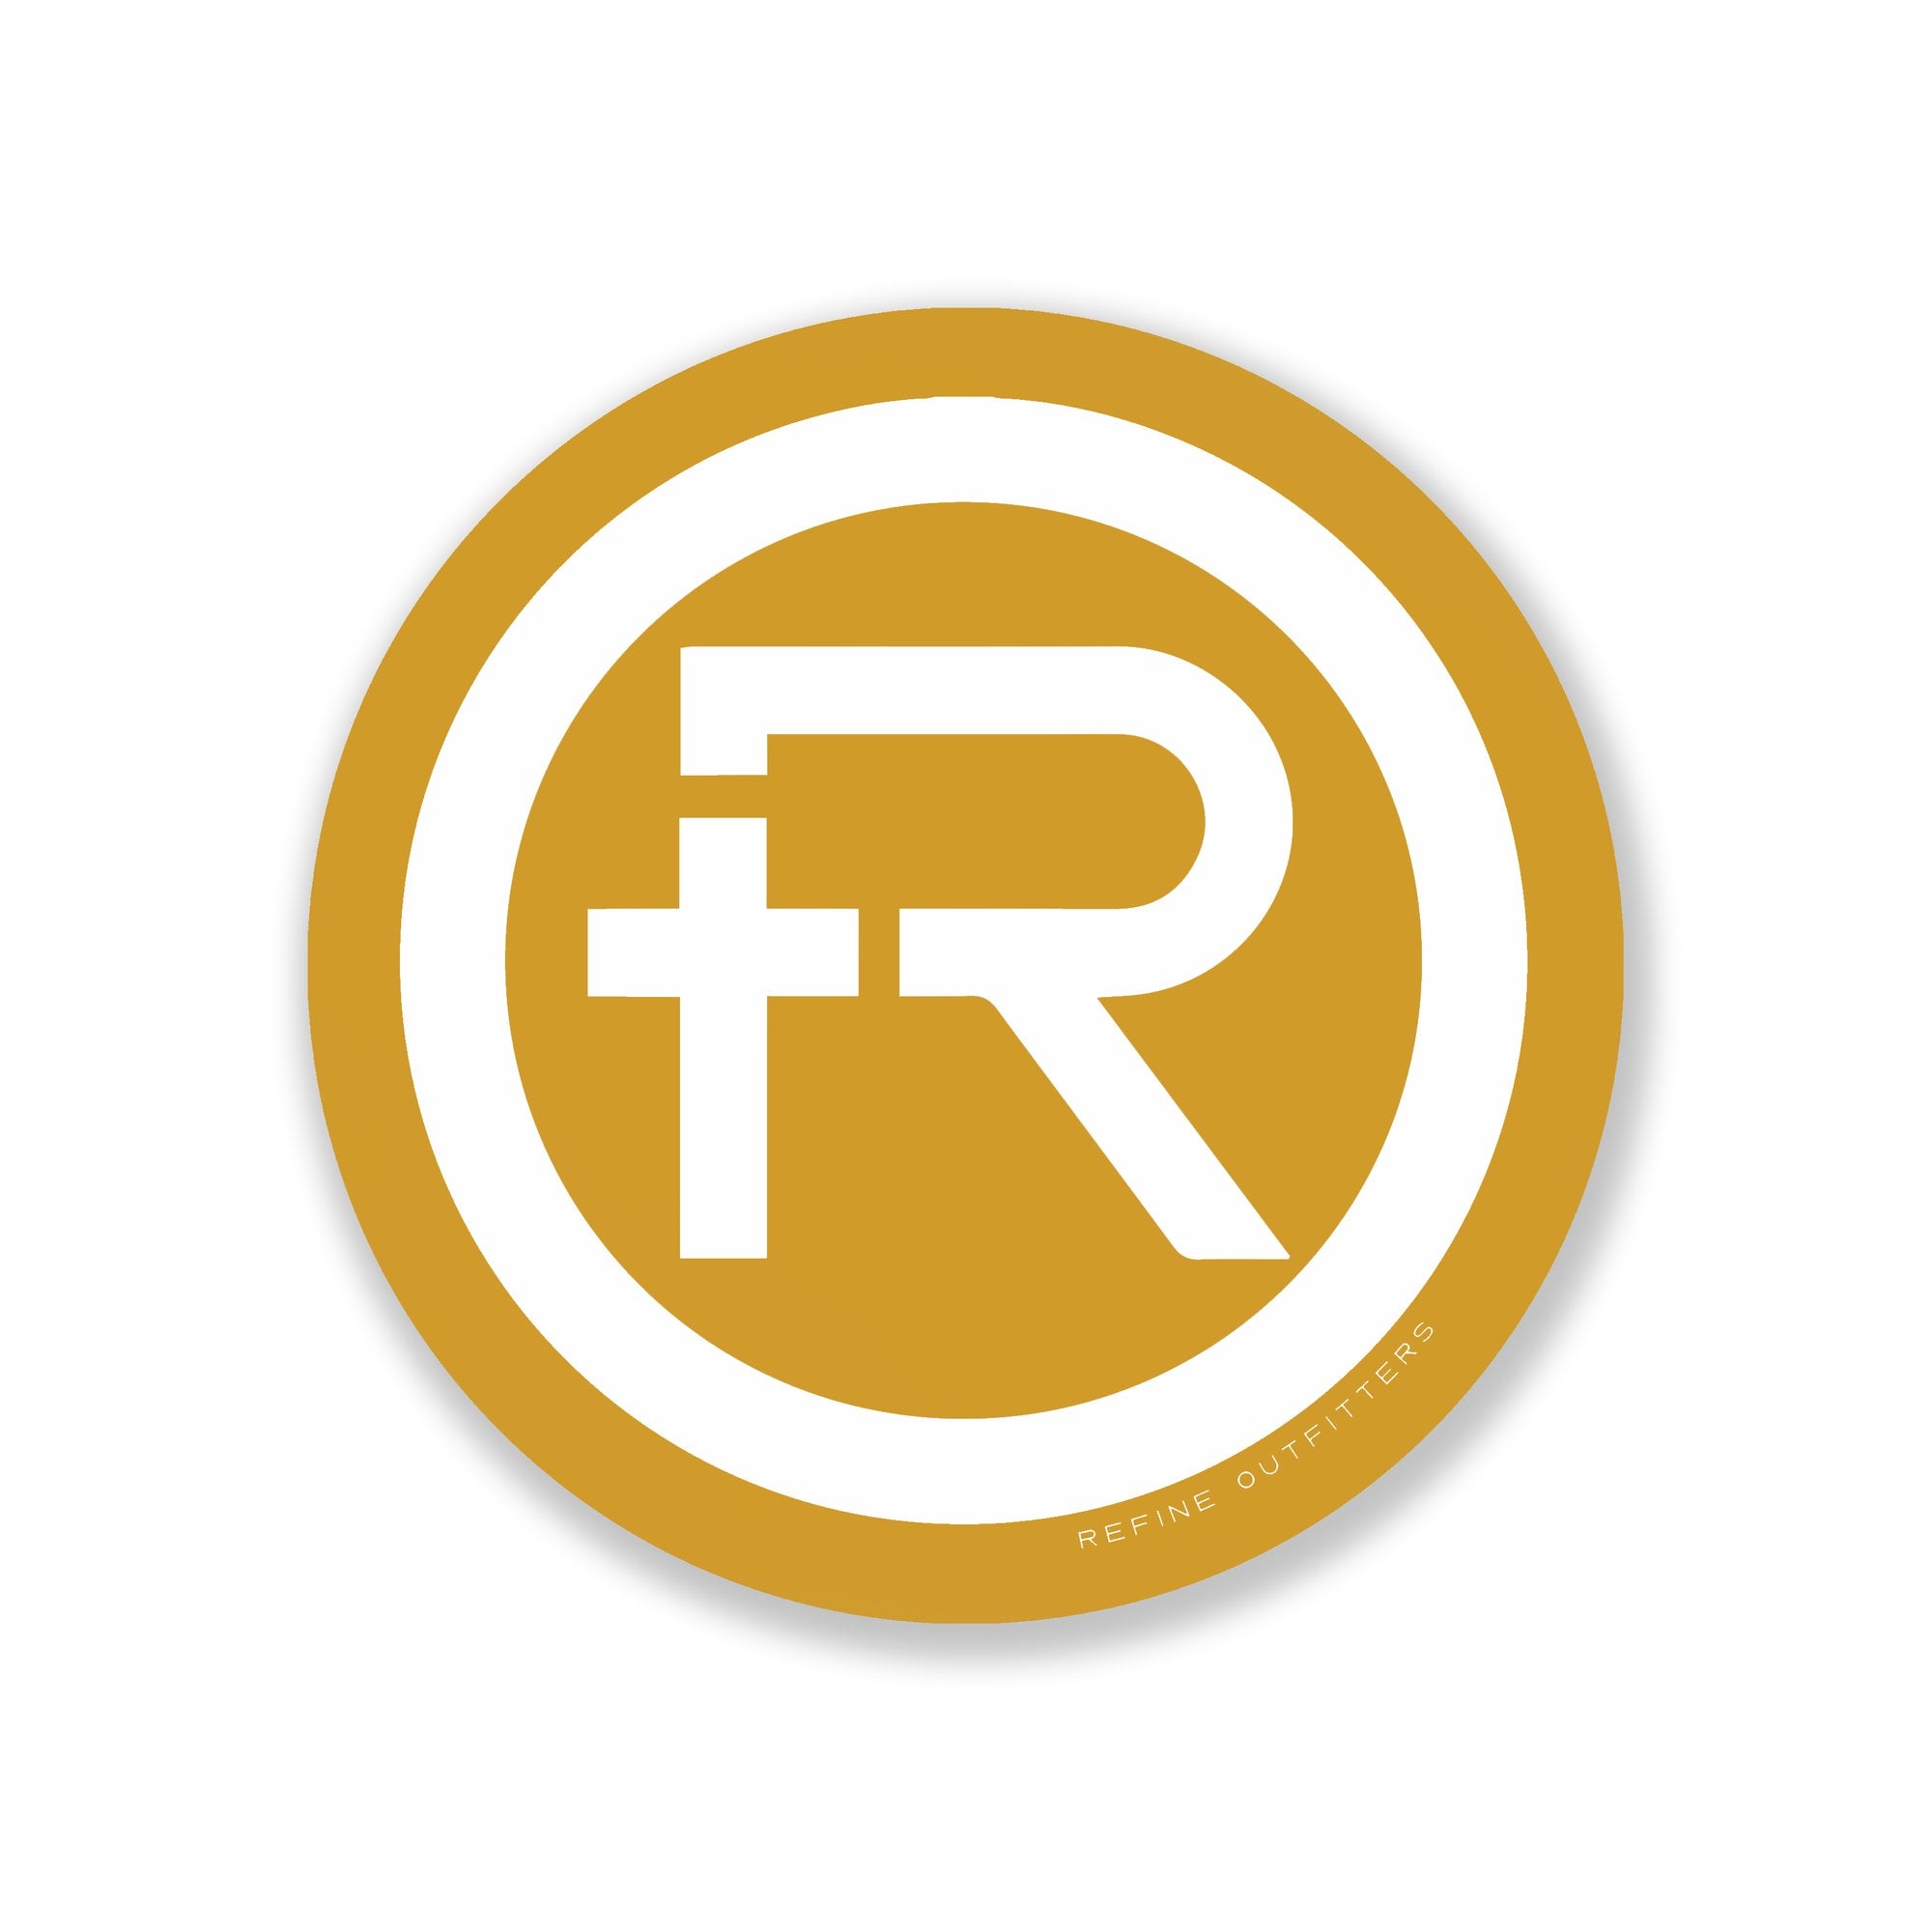 Refine outfitters r logo sticker gold